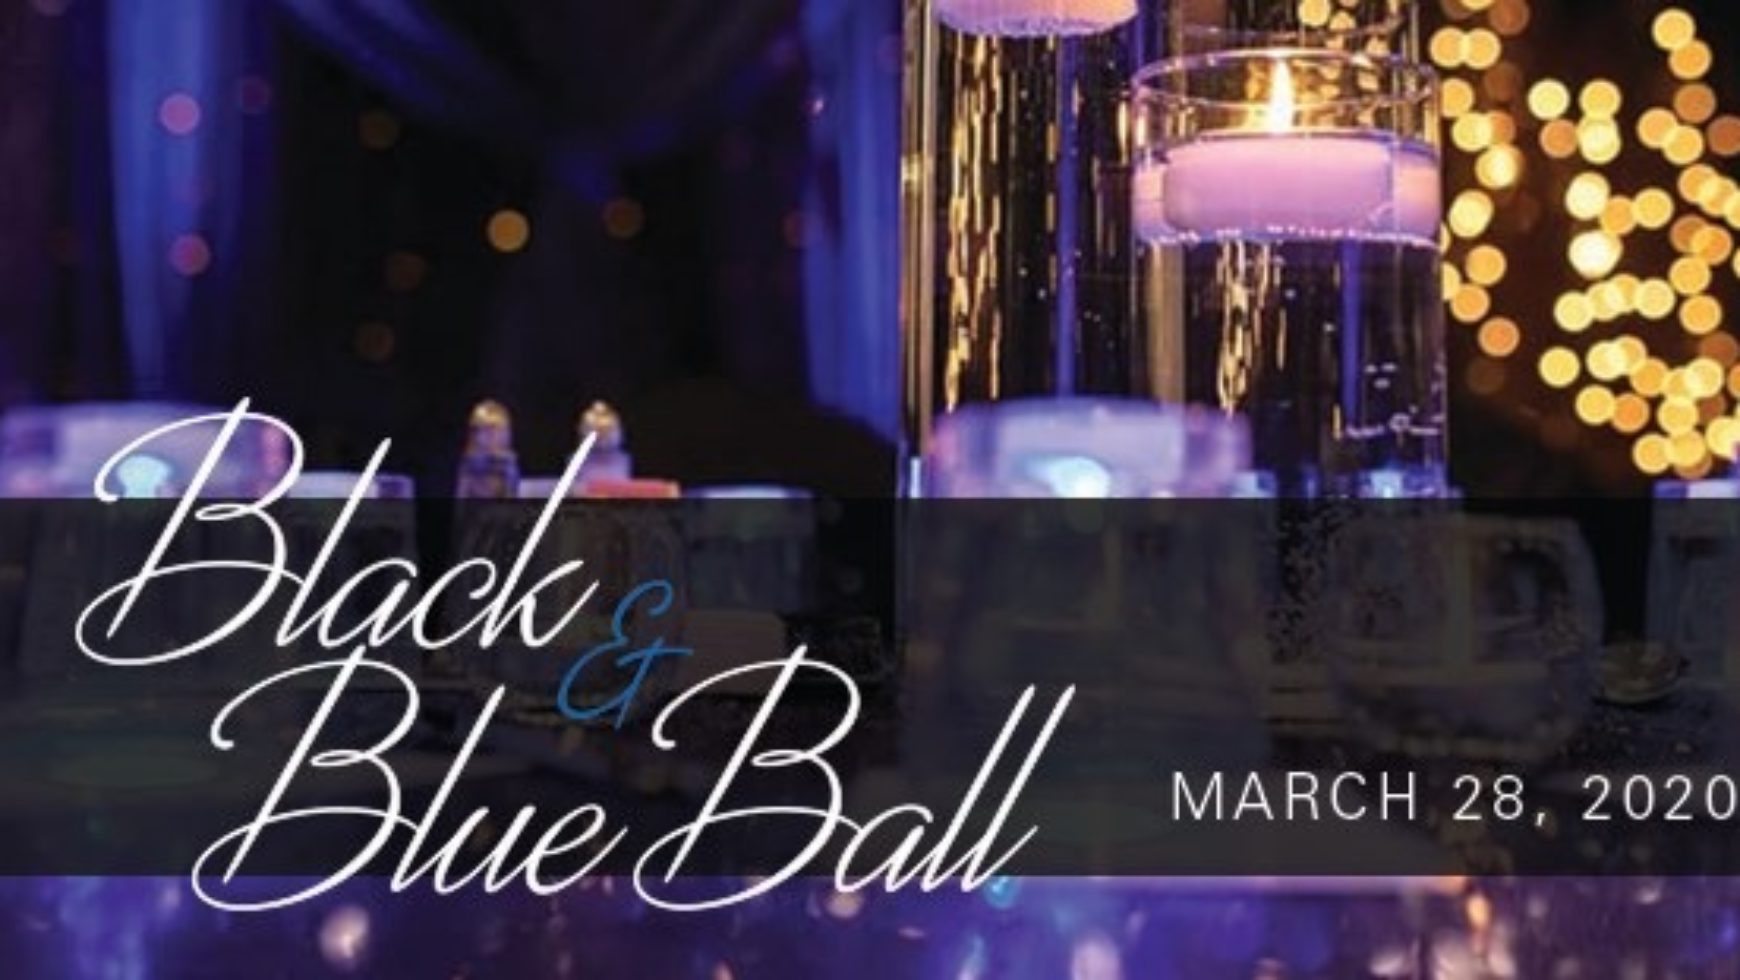 Black and Blue Ball 2020